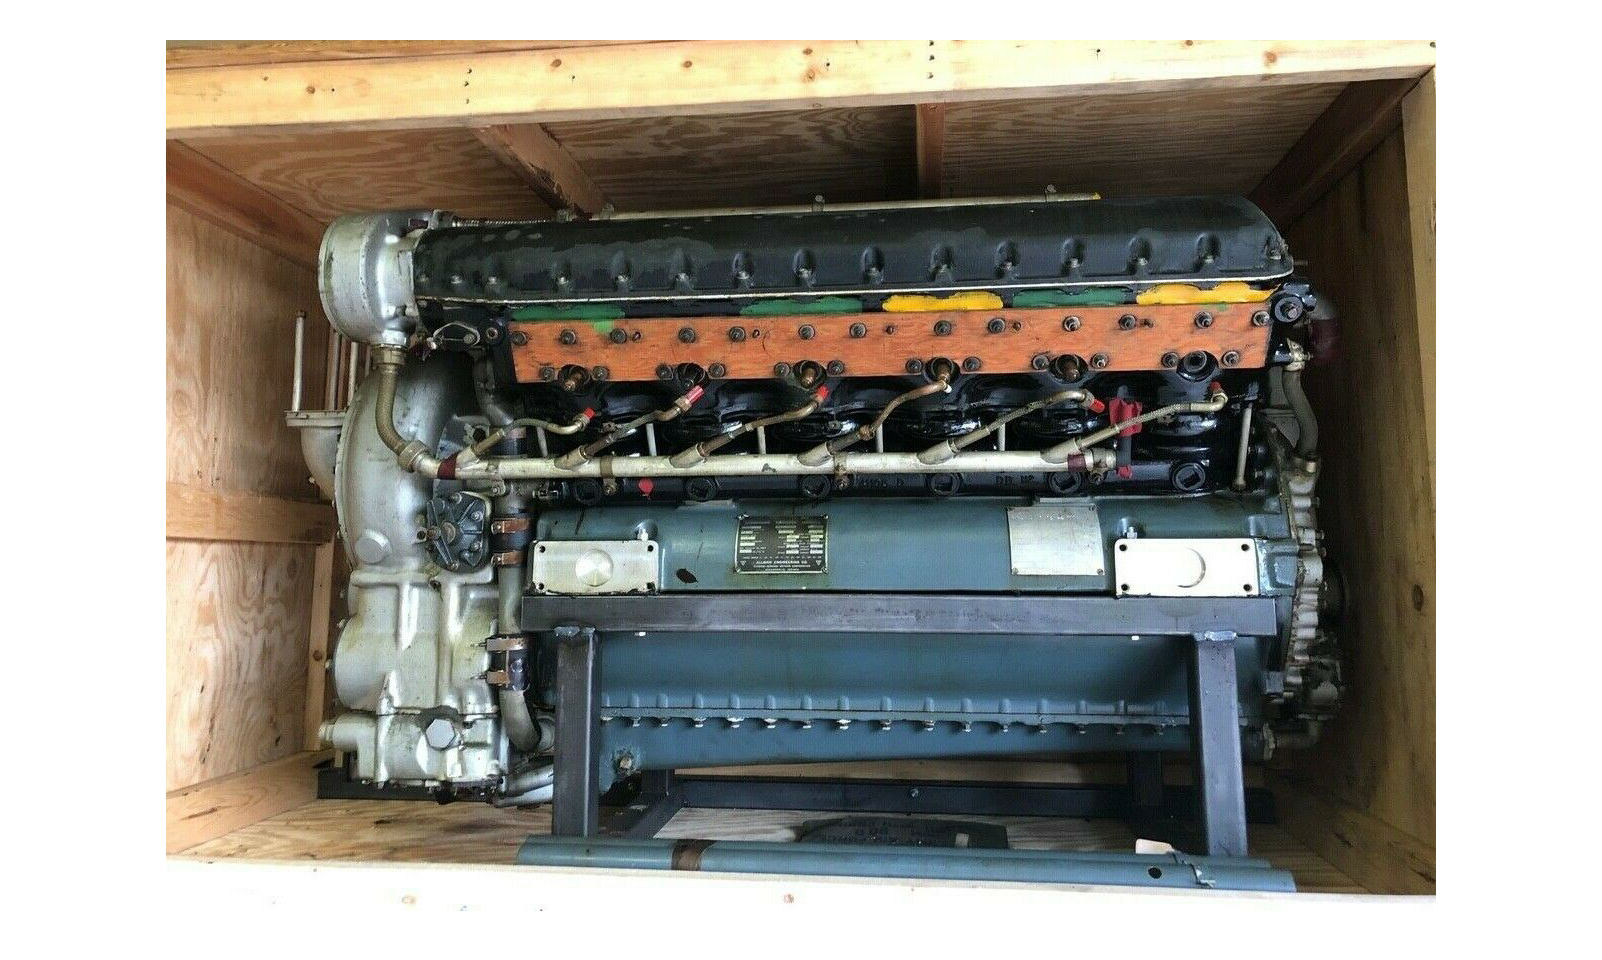 There's An 28 Litre, 1,100+ HP Allison V12 Aero Engine For Sale On eBay